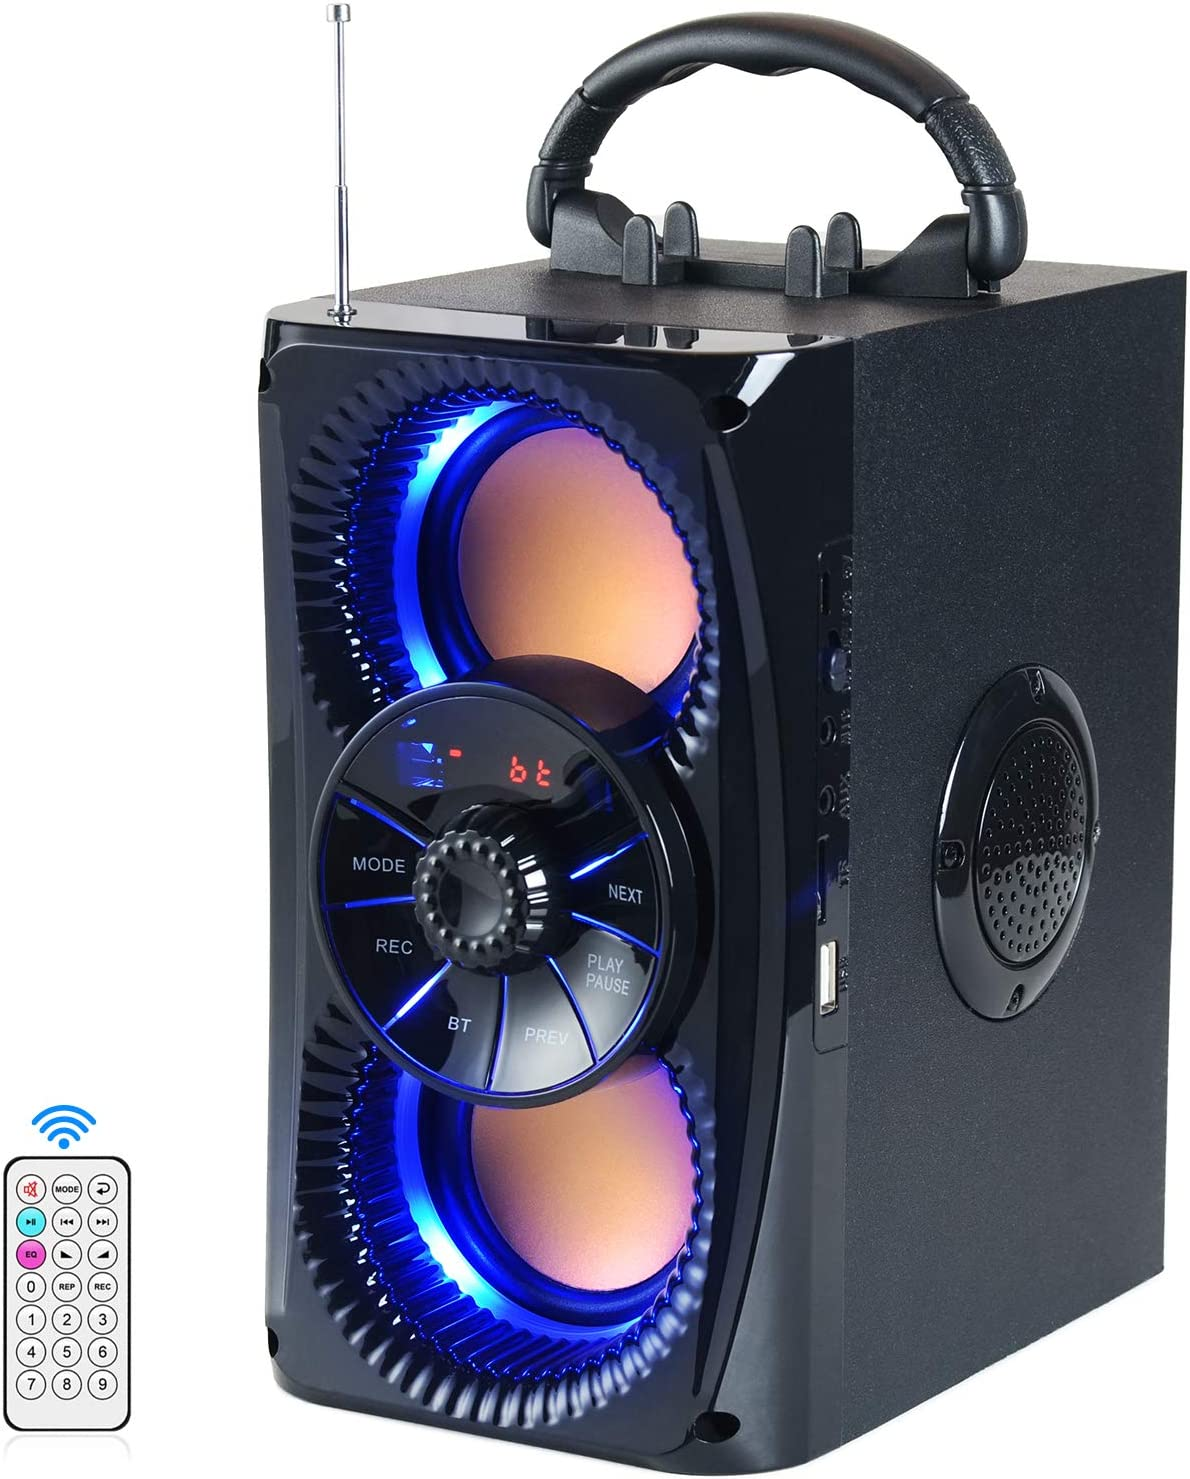 Bluetooth Speakers, Portable Wireless Speaker with Lights, Double Subwoofer Heavy Bass, FM Radio, SD Player, Remote, Suitable for Travel, Indoors and Outdoors, 4 Loud Speakers